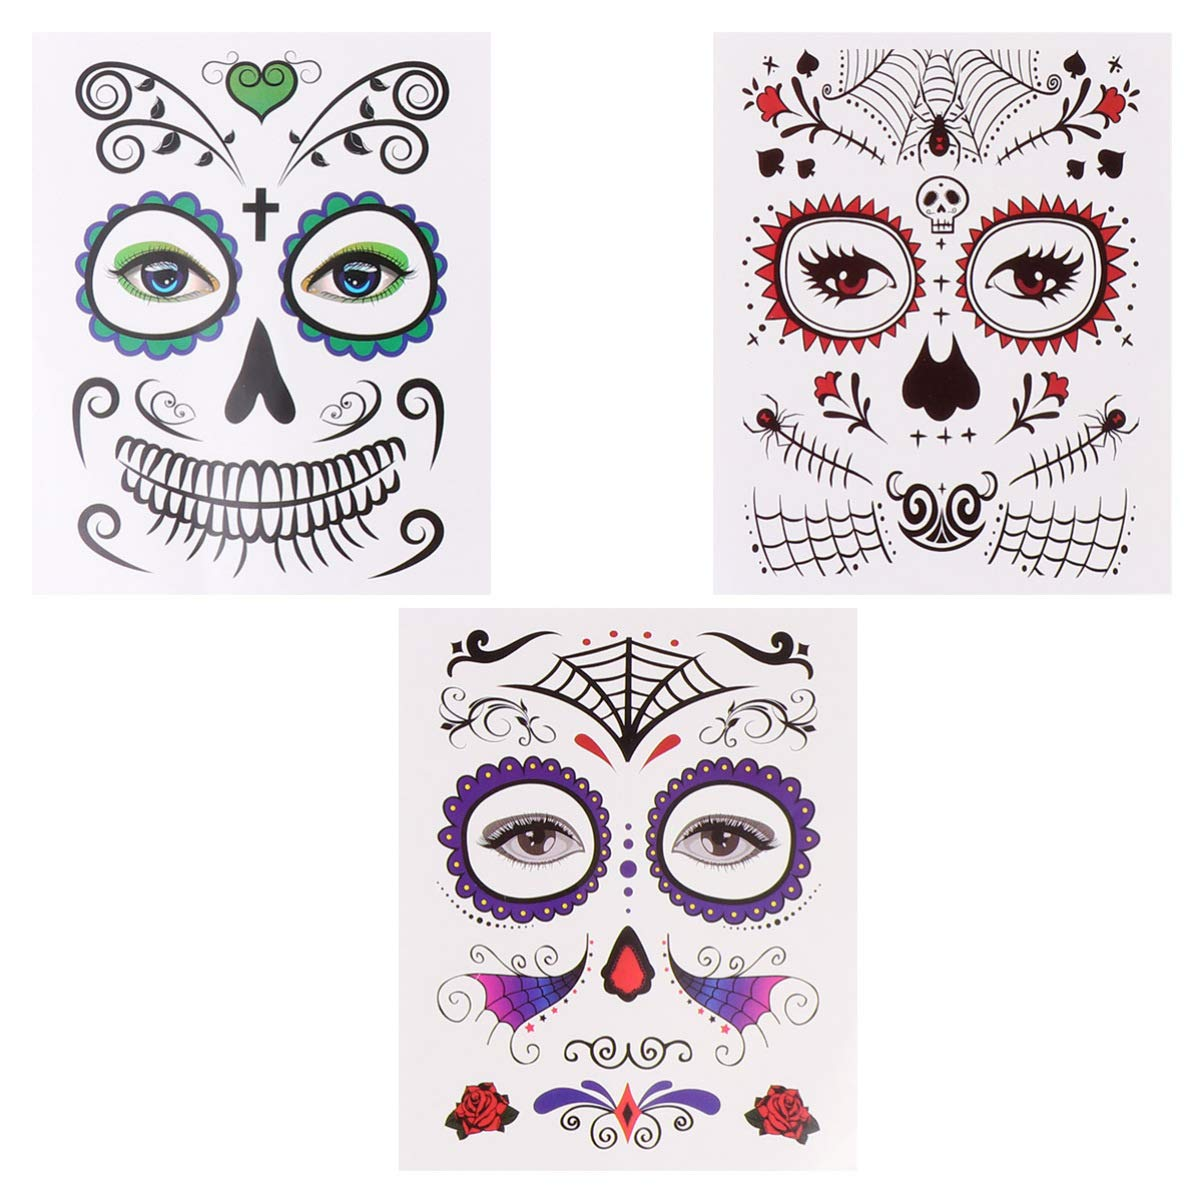 Minkissy 6pcs Face Tattoo Stickers Day of the Dead Makeup Stickers for Halloween Festival Costume